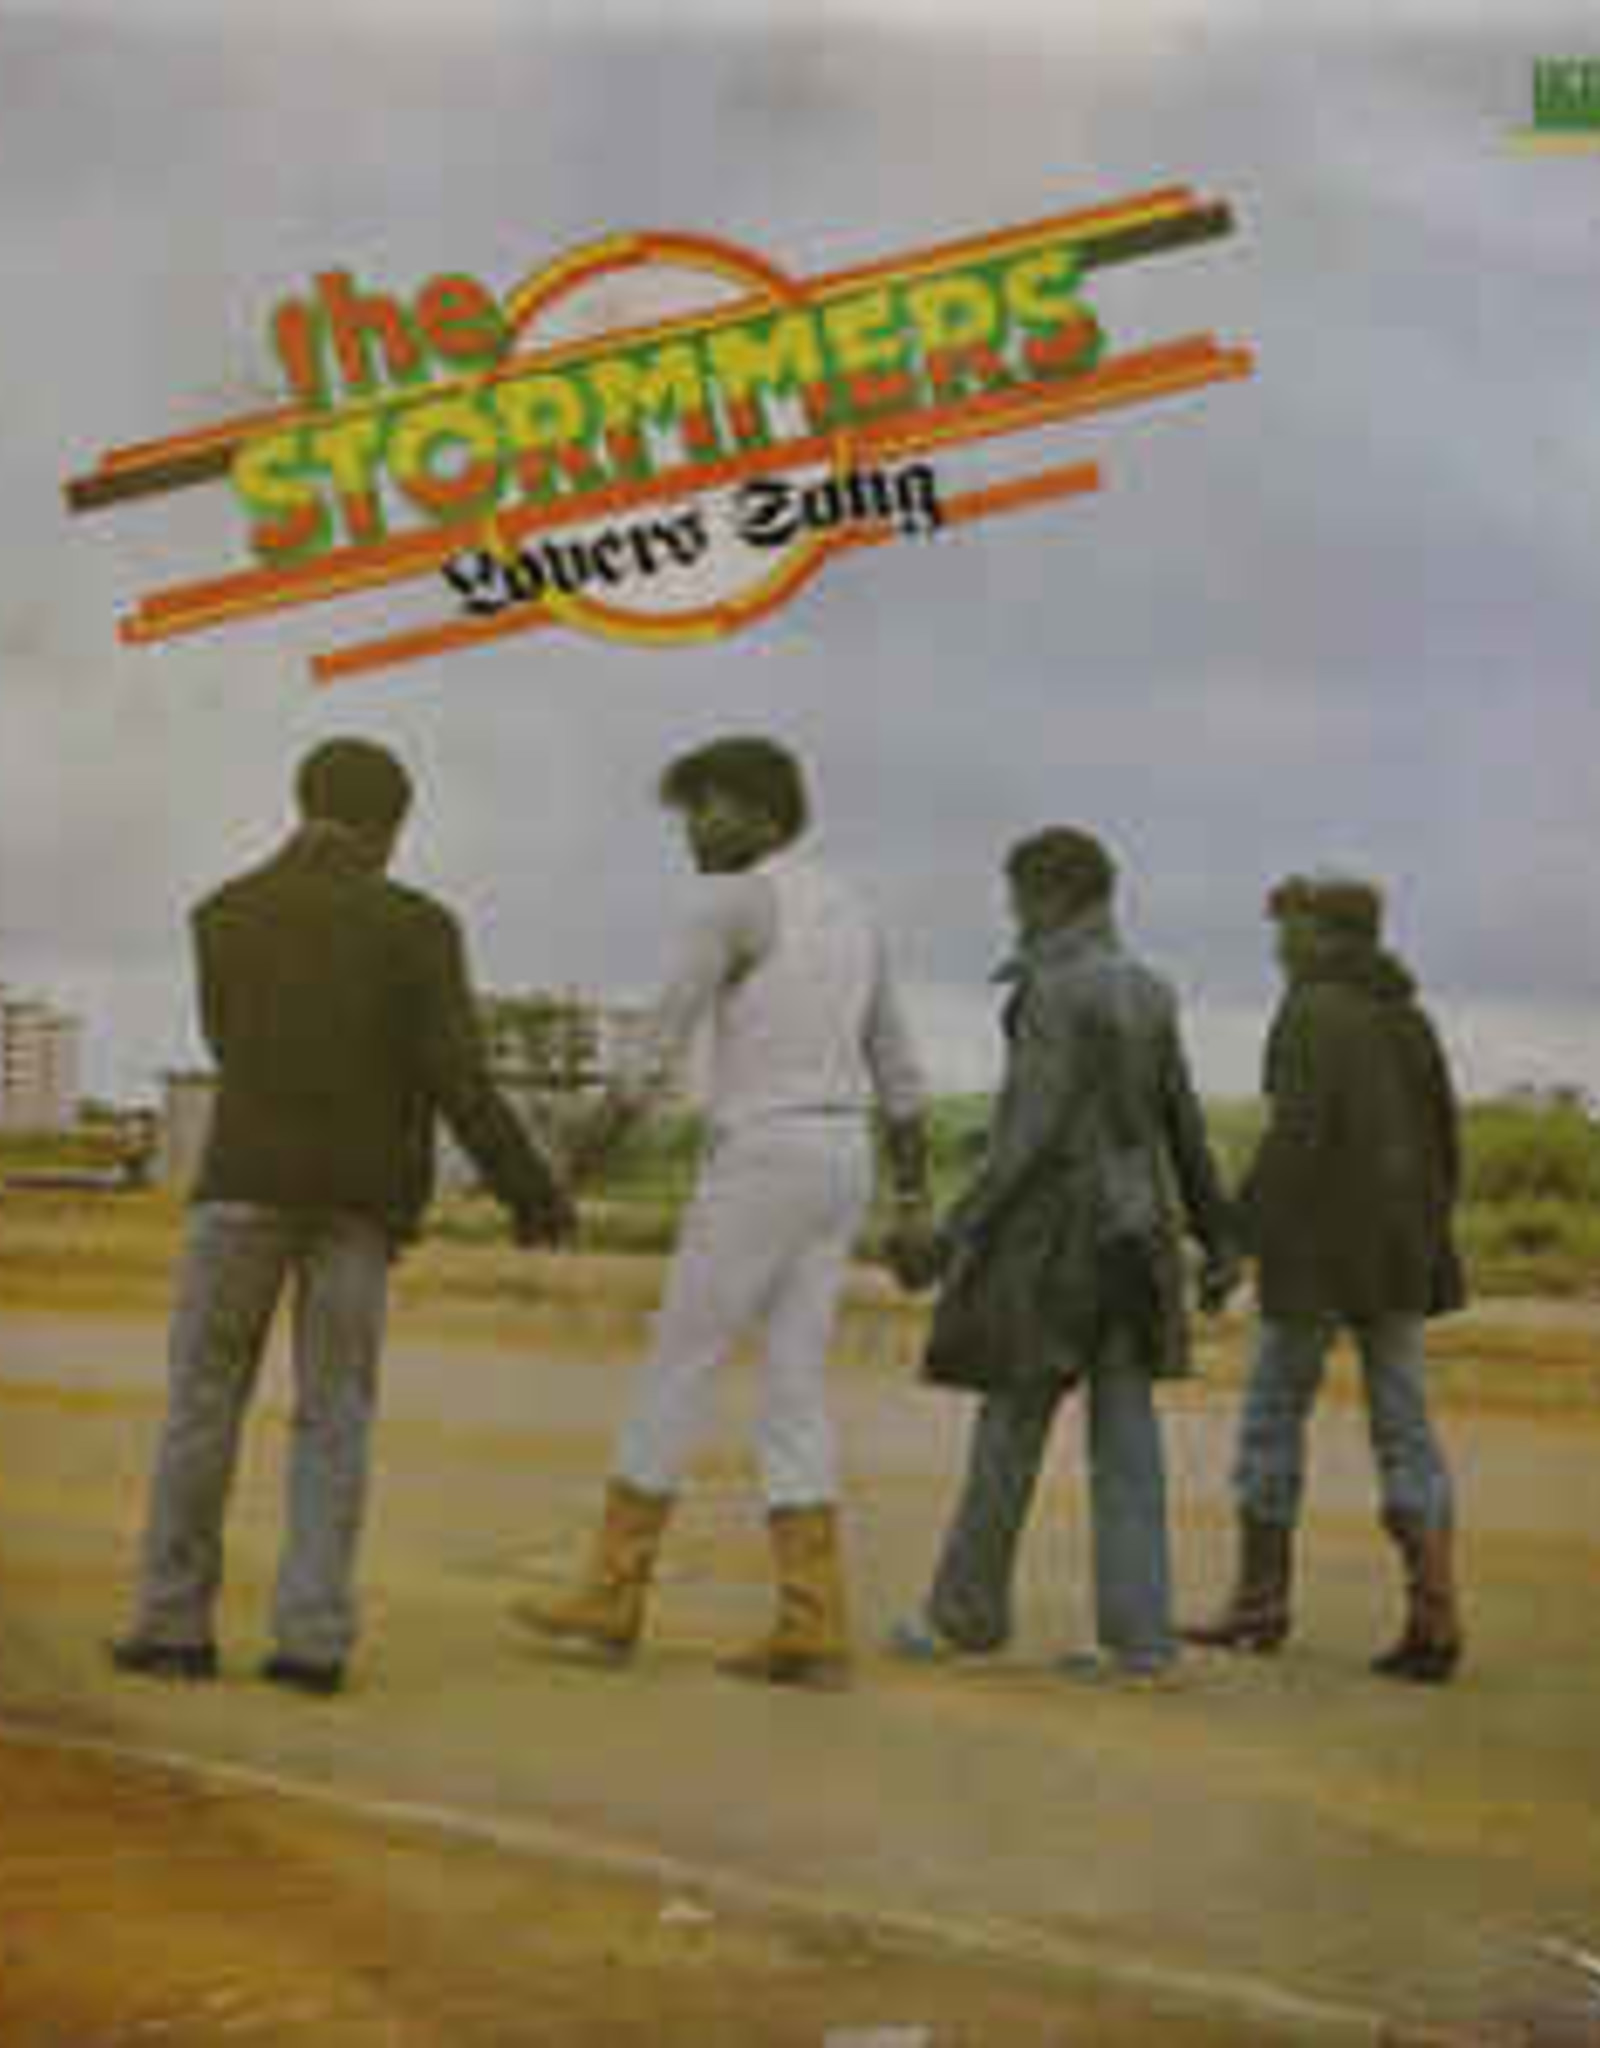 The Stormmers - Lovers Song